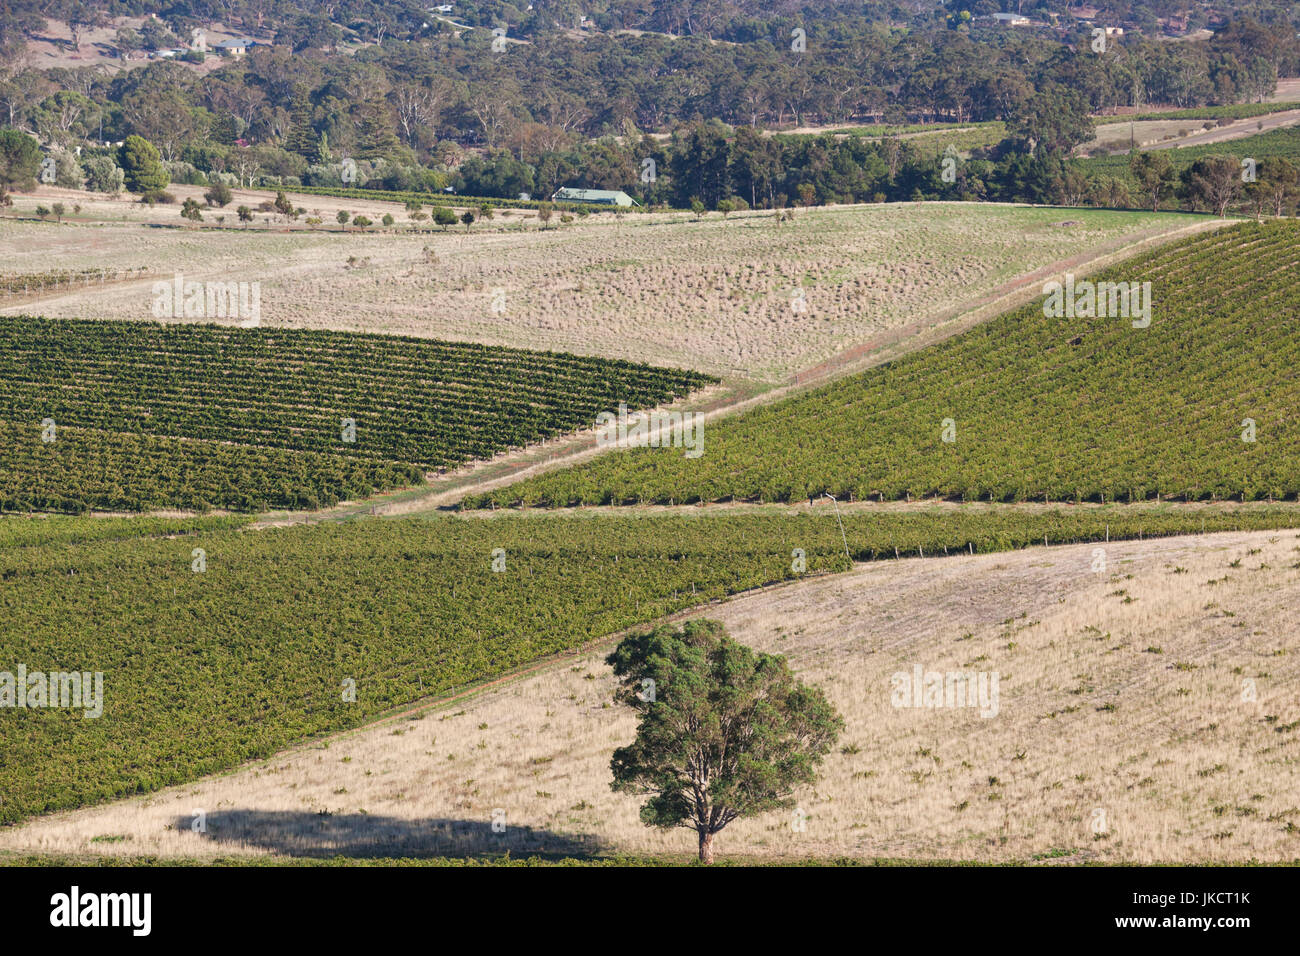 Australia, South Australia, Clare Valley, Clare, elevated view of vineyards from Quarry Hill, morning - Stock Image